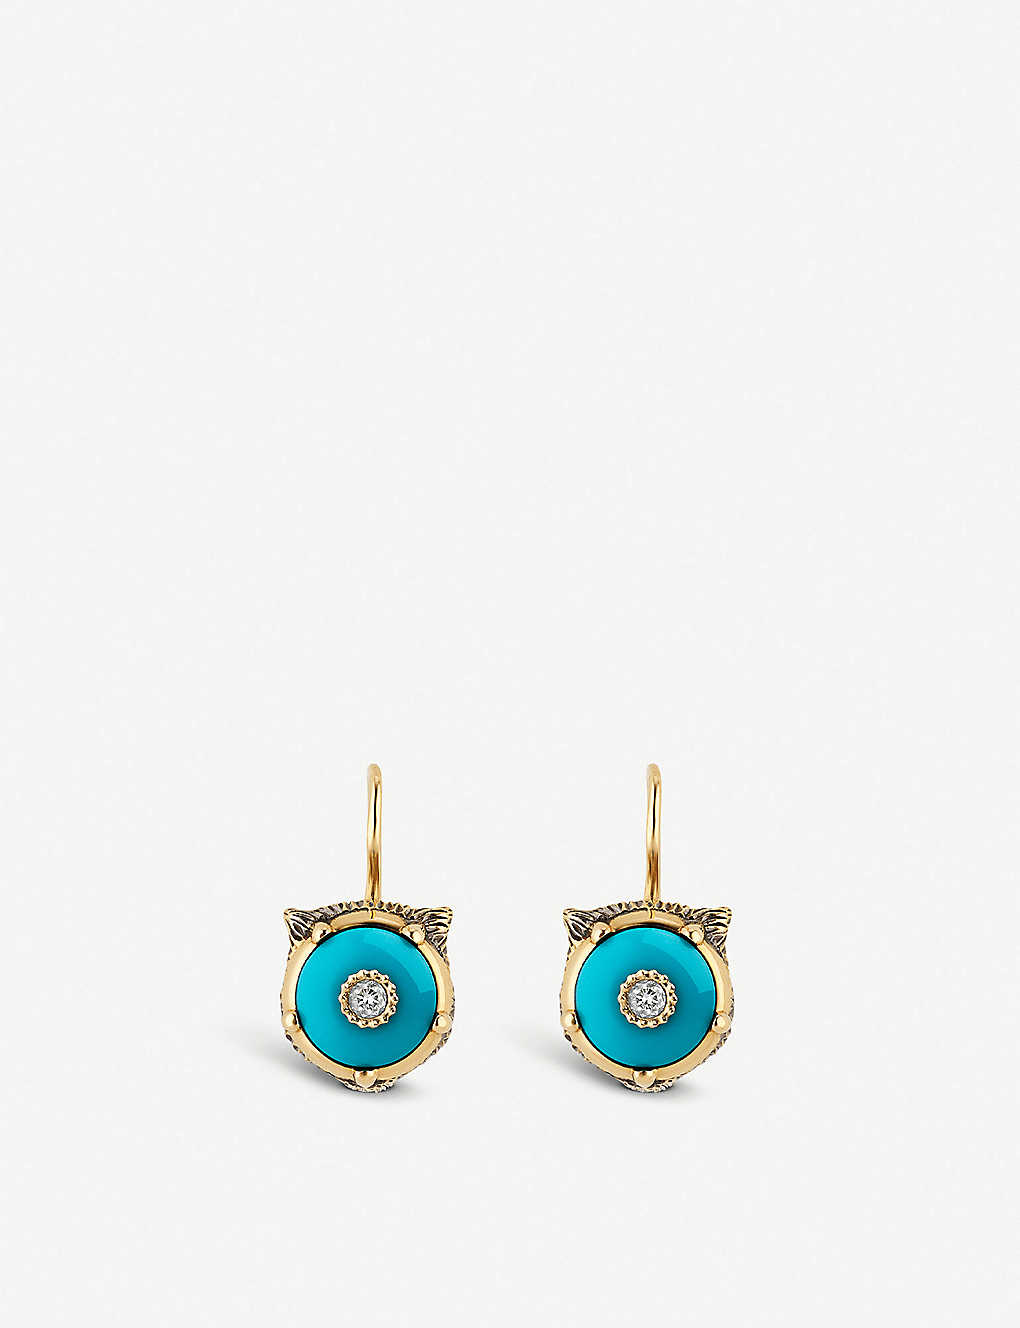 11200fe403b302 GUCCI - Le Marché des Merveilles 18ct yellow-gold, turquoise and ...